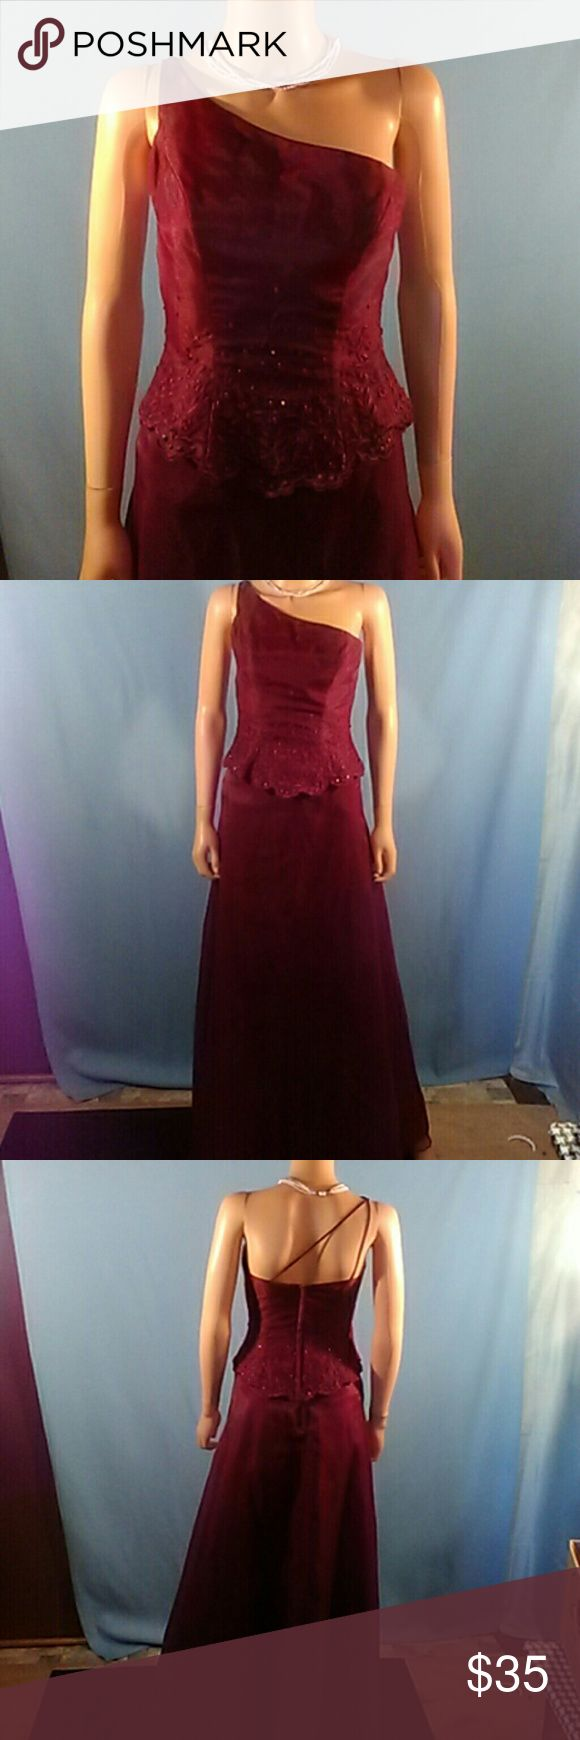 Mori Lee Dress Beautiful Two piece dress. Maroon with flowers and beads on top half. Mori Lee Dresses